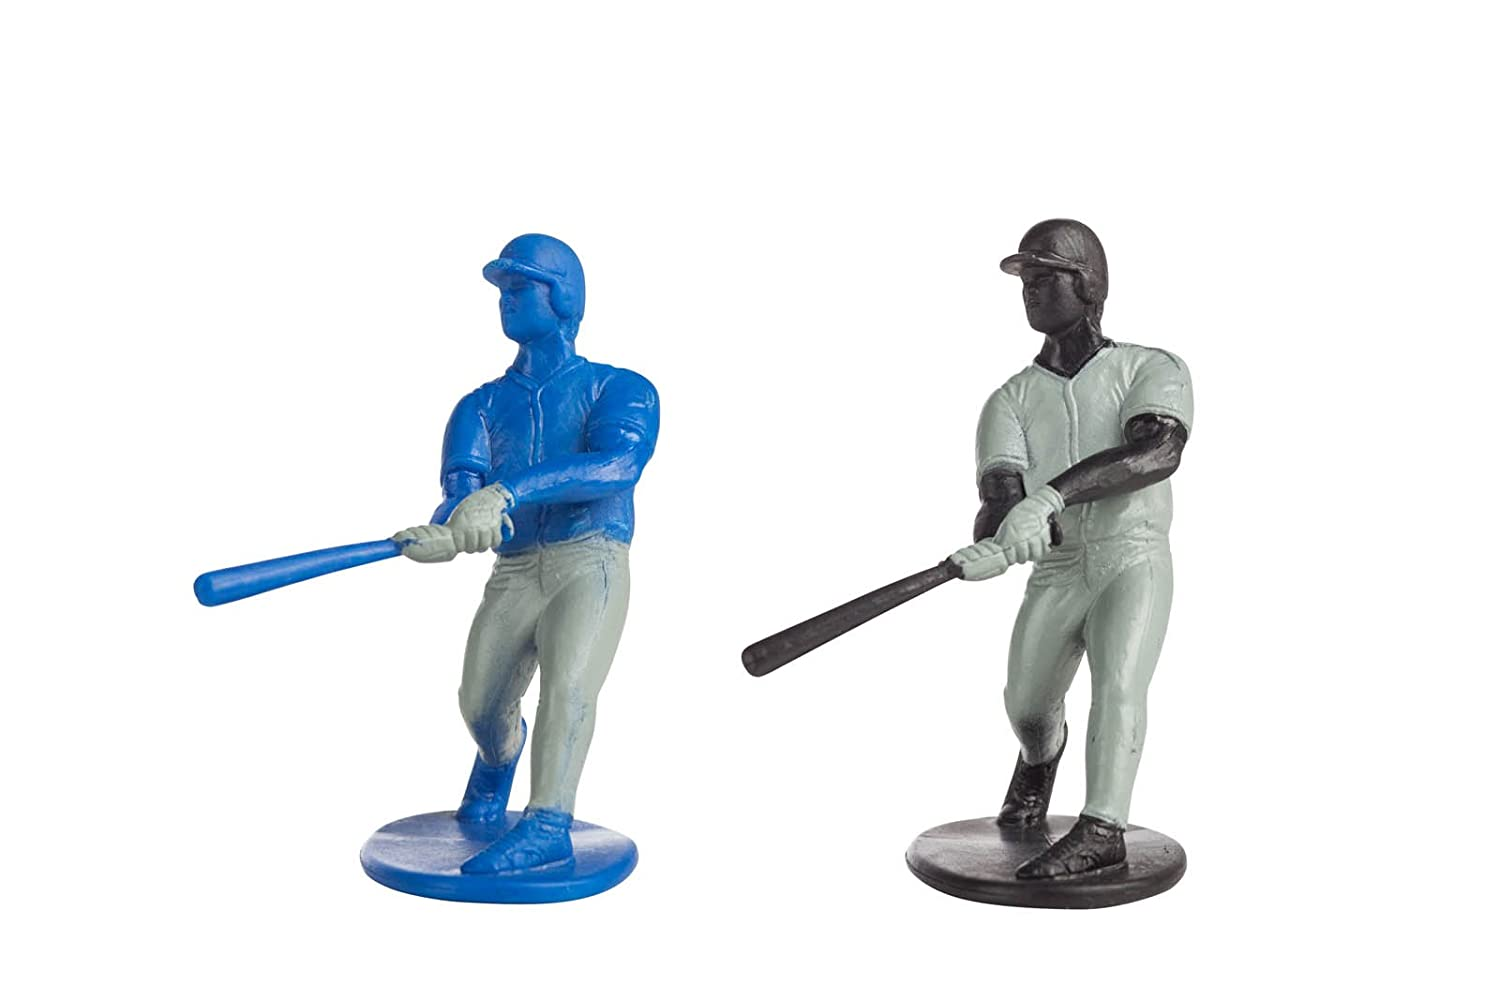 for Ages 3 and Up 6200 Inspires Imagination with Open-Ended Play Kaskey Kids Baseball Guys: Black vs Blue Includes 2 Full Teams and More